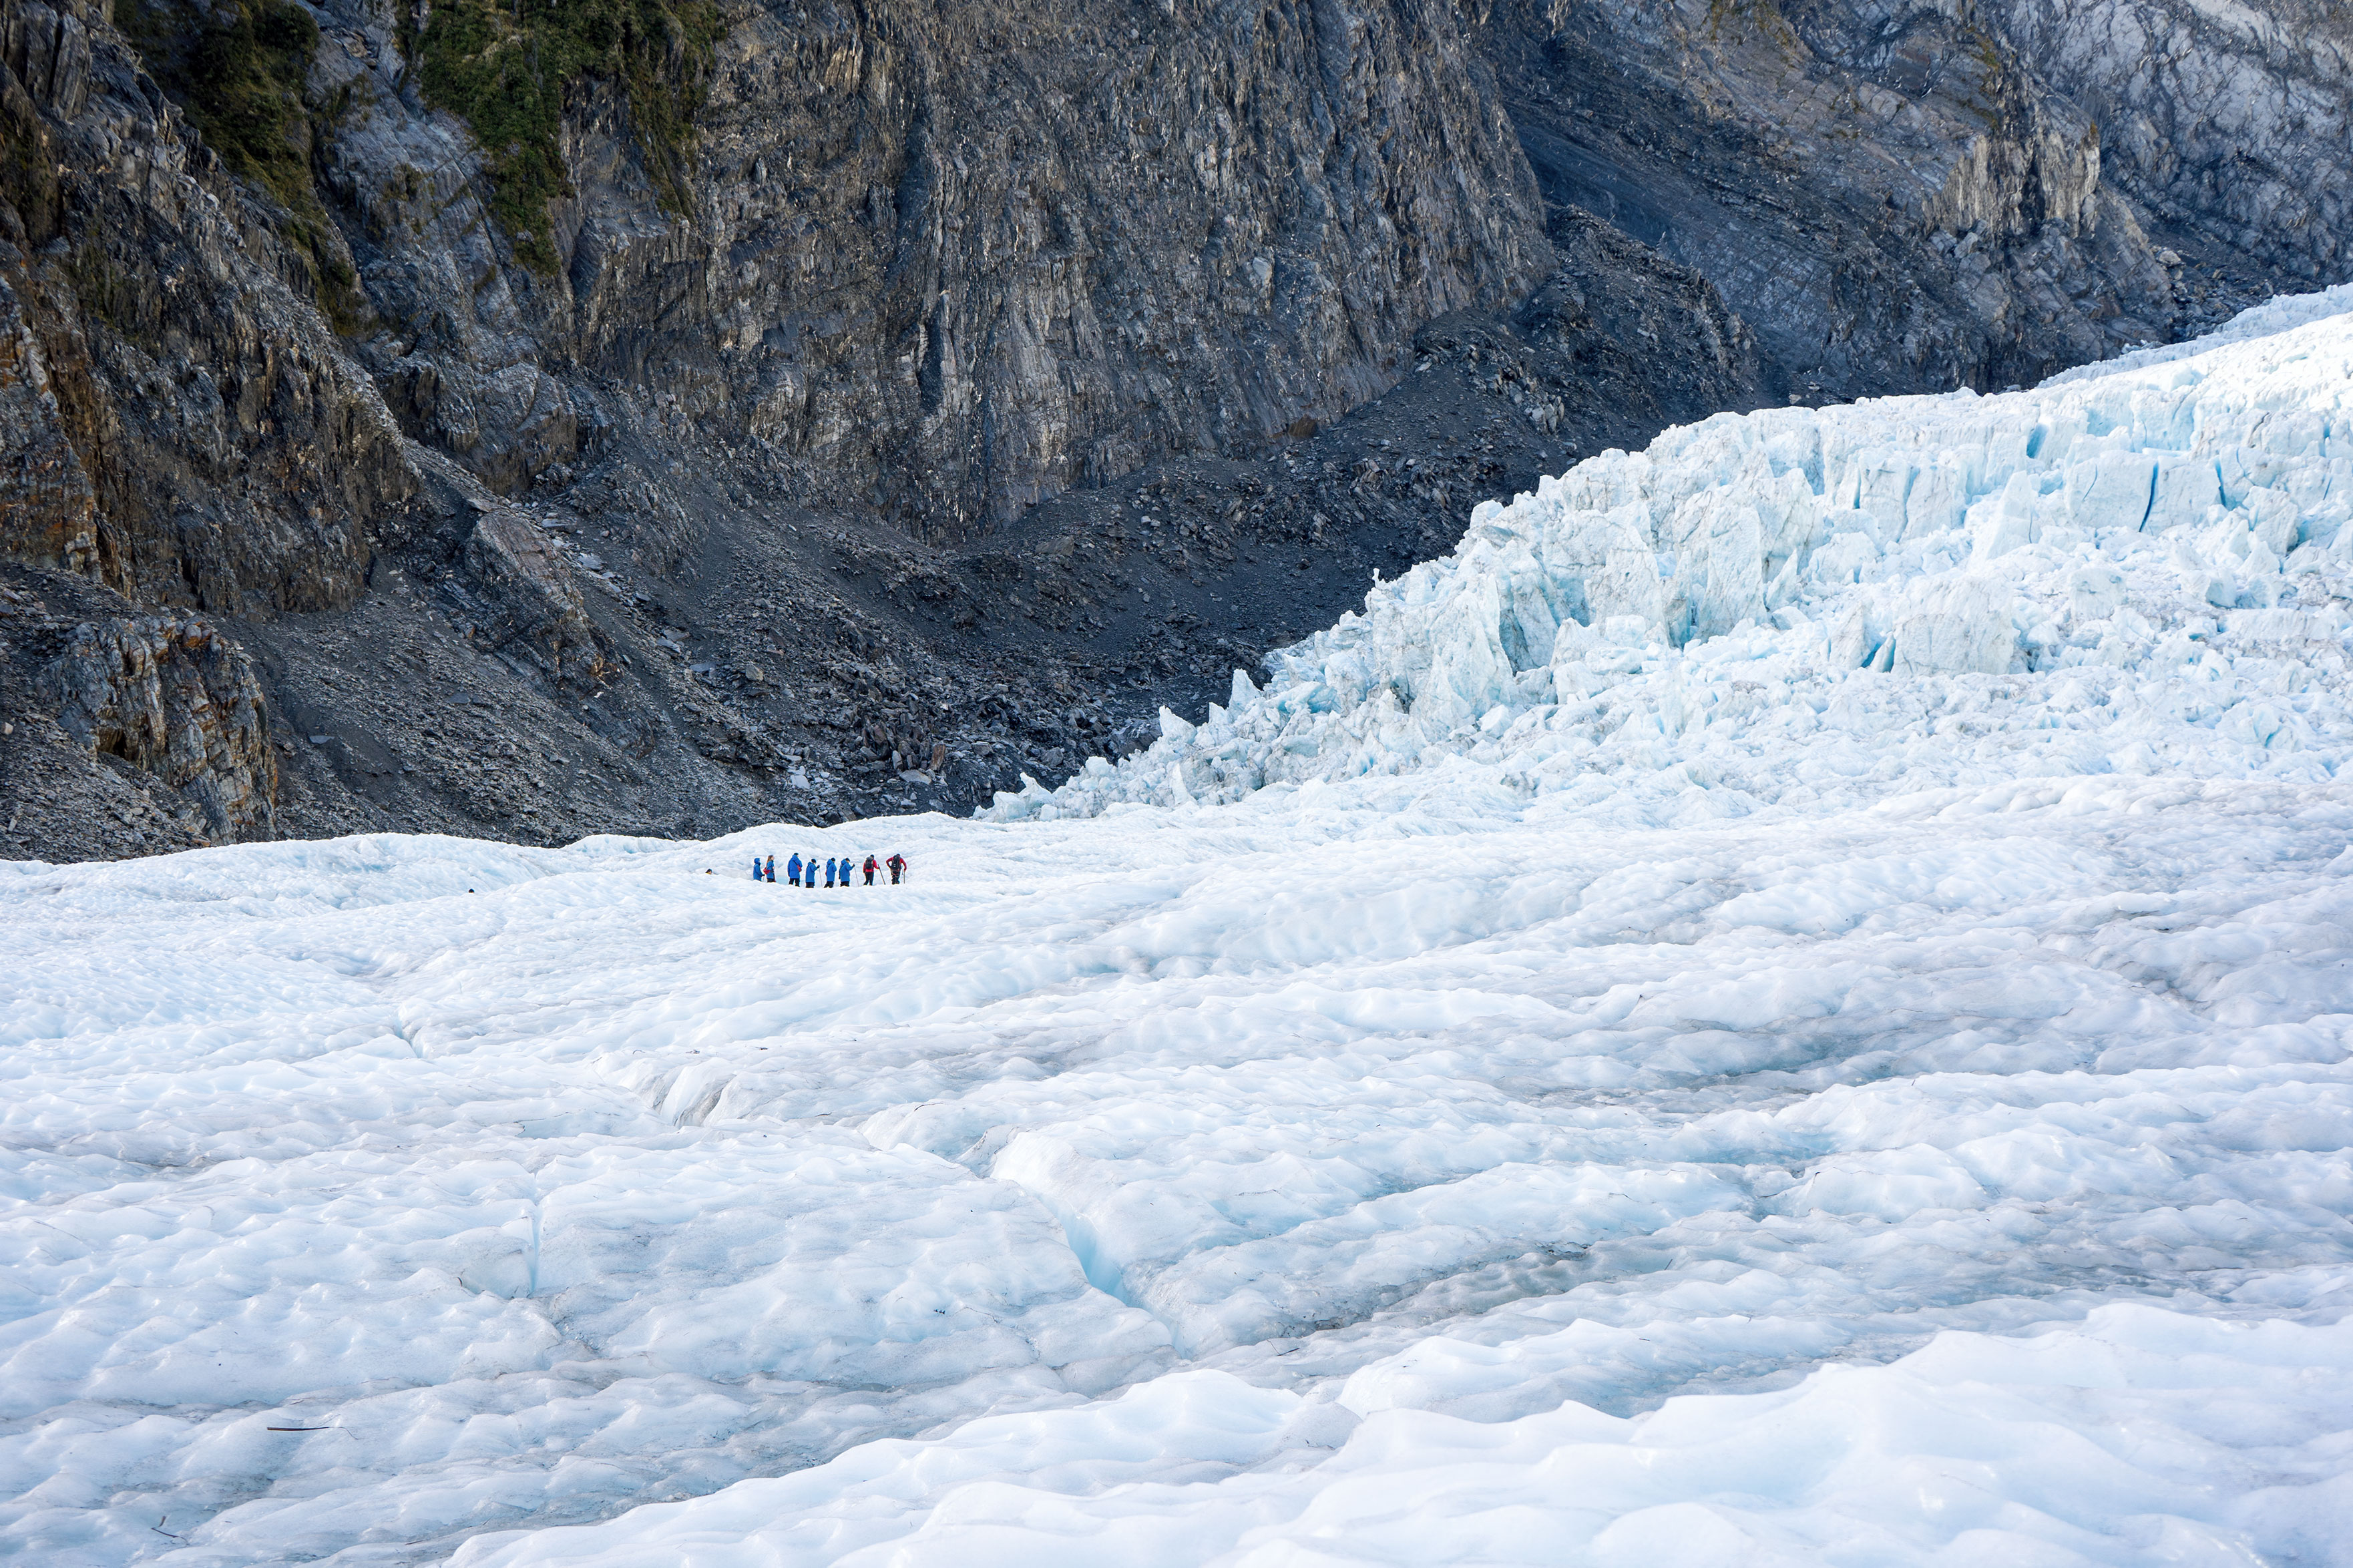 Franz Josef Glacier Heli Hike View Of Glacier Ice And Hikers In The Distance